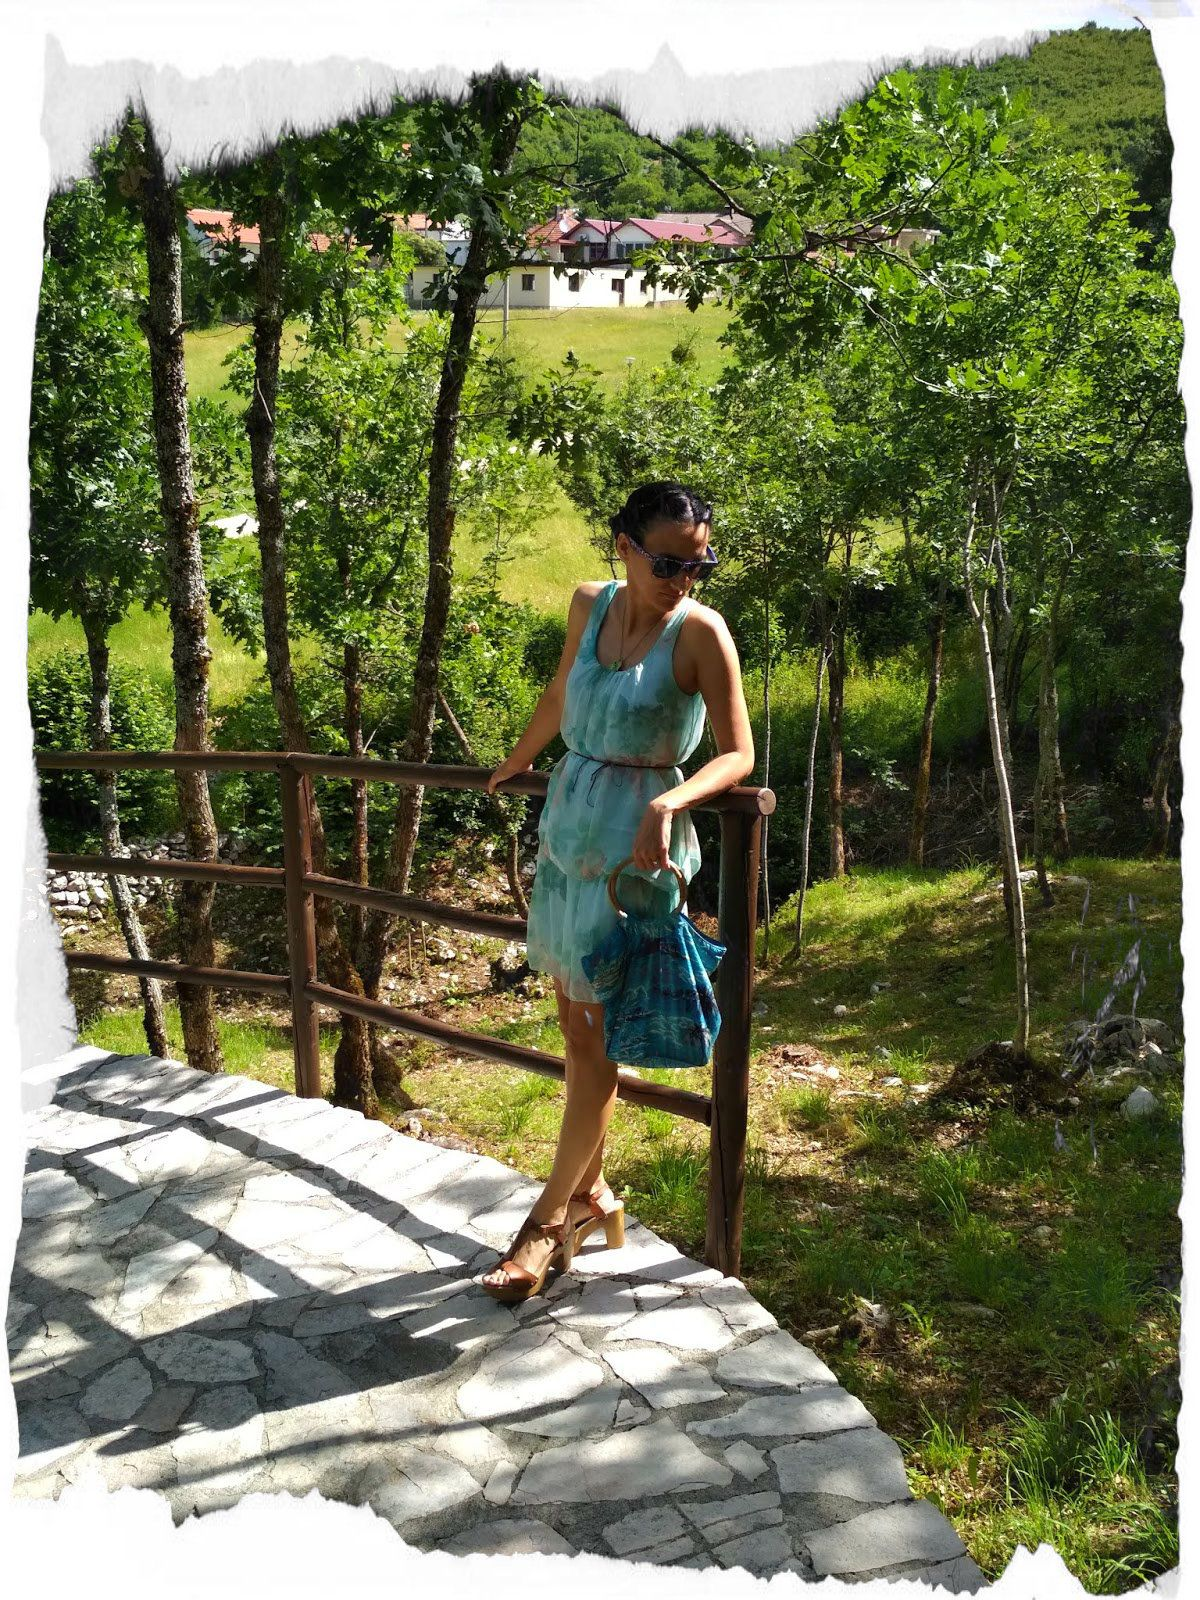 A Pastel Outfit For A Day In The Country Goranci Bosnia And Herzegovina Pastel Outfit Pastel Outfits